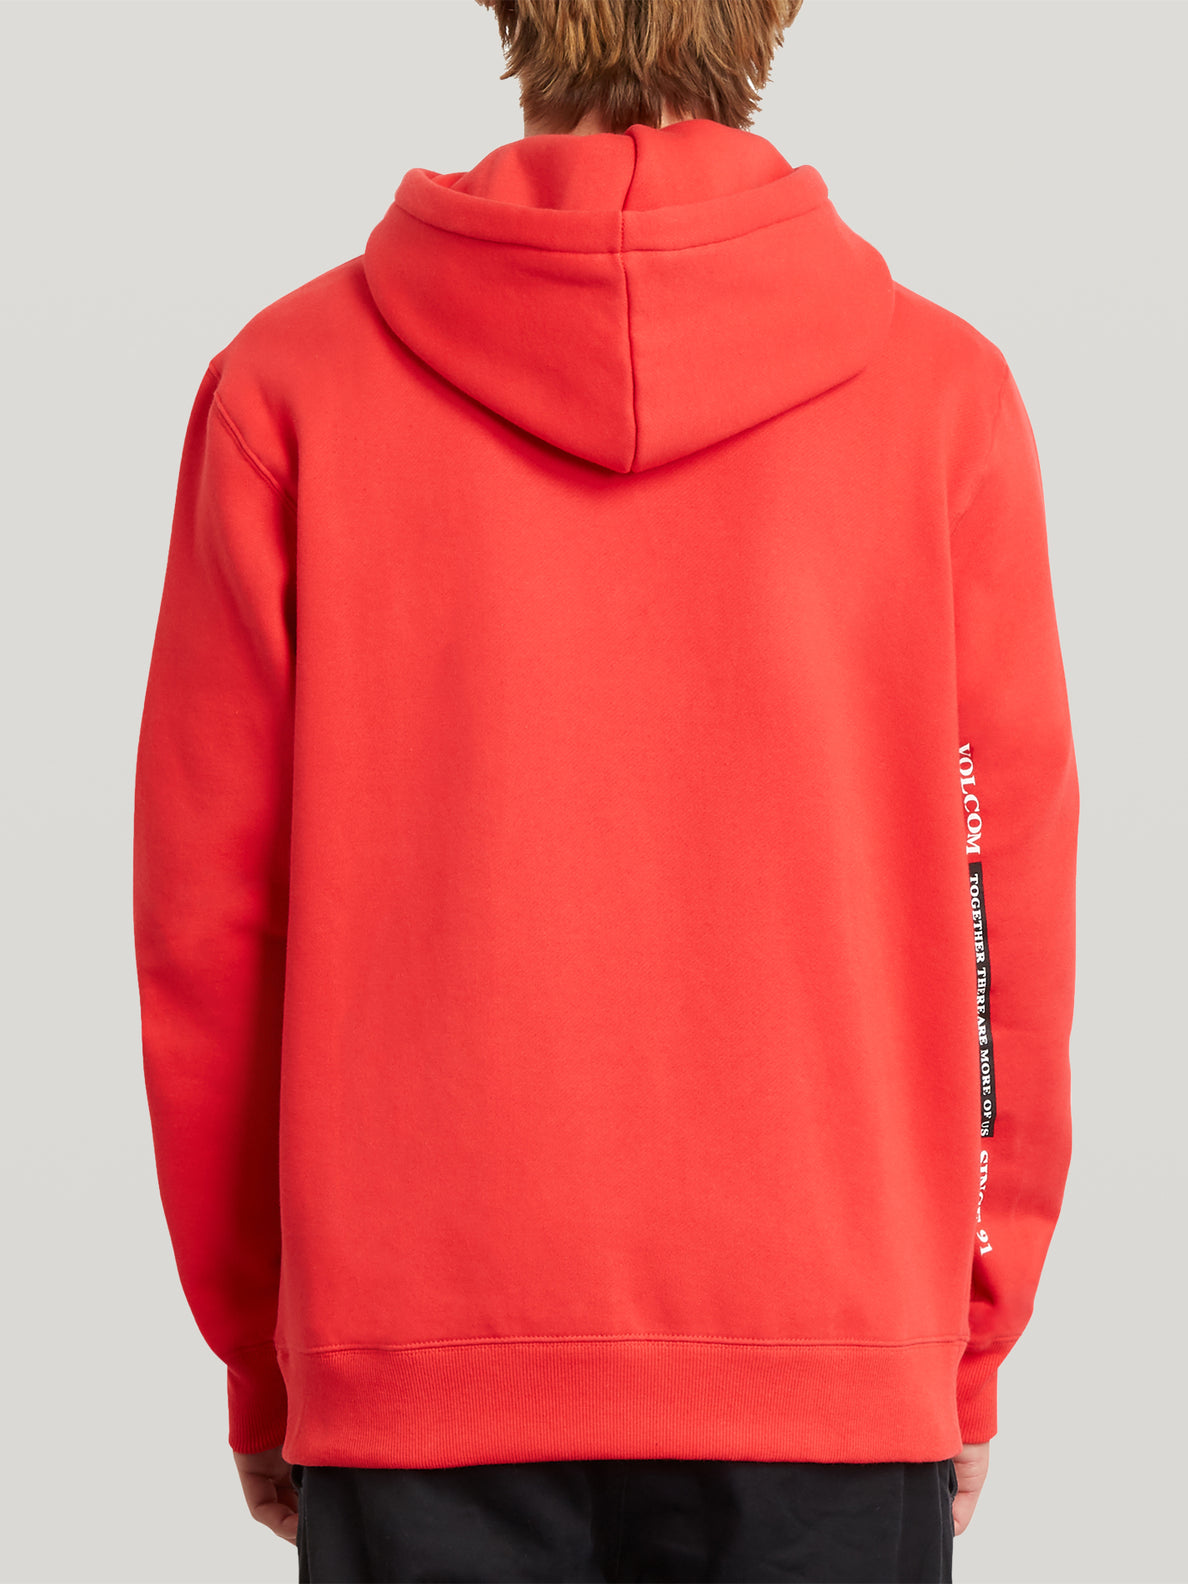 Merick Pullover - Fiery Red